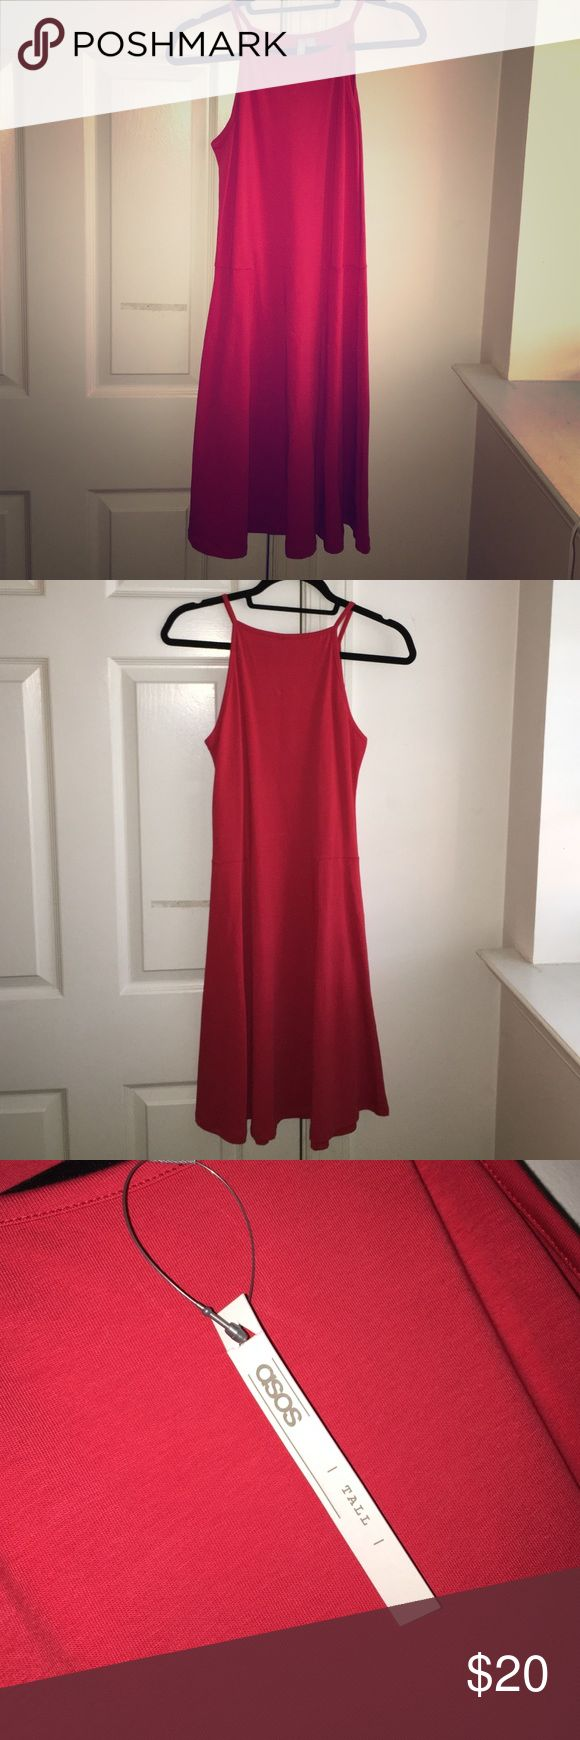 ASOS red dress Never worn red dress. Tall size. Dresses Midi